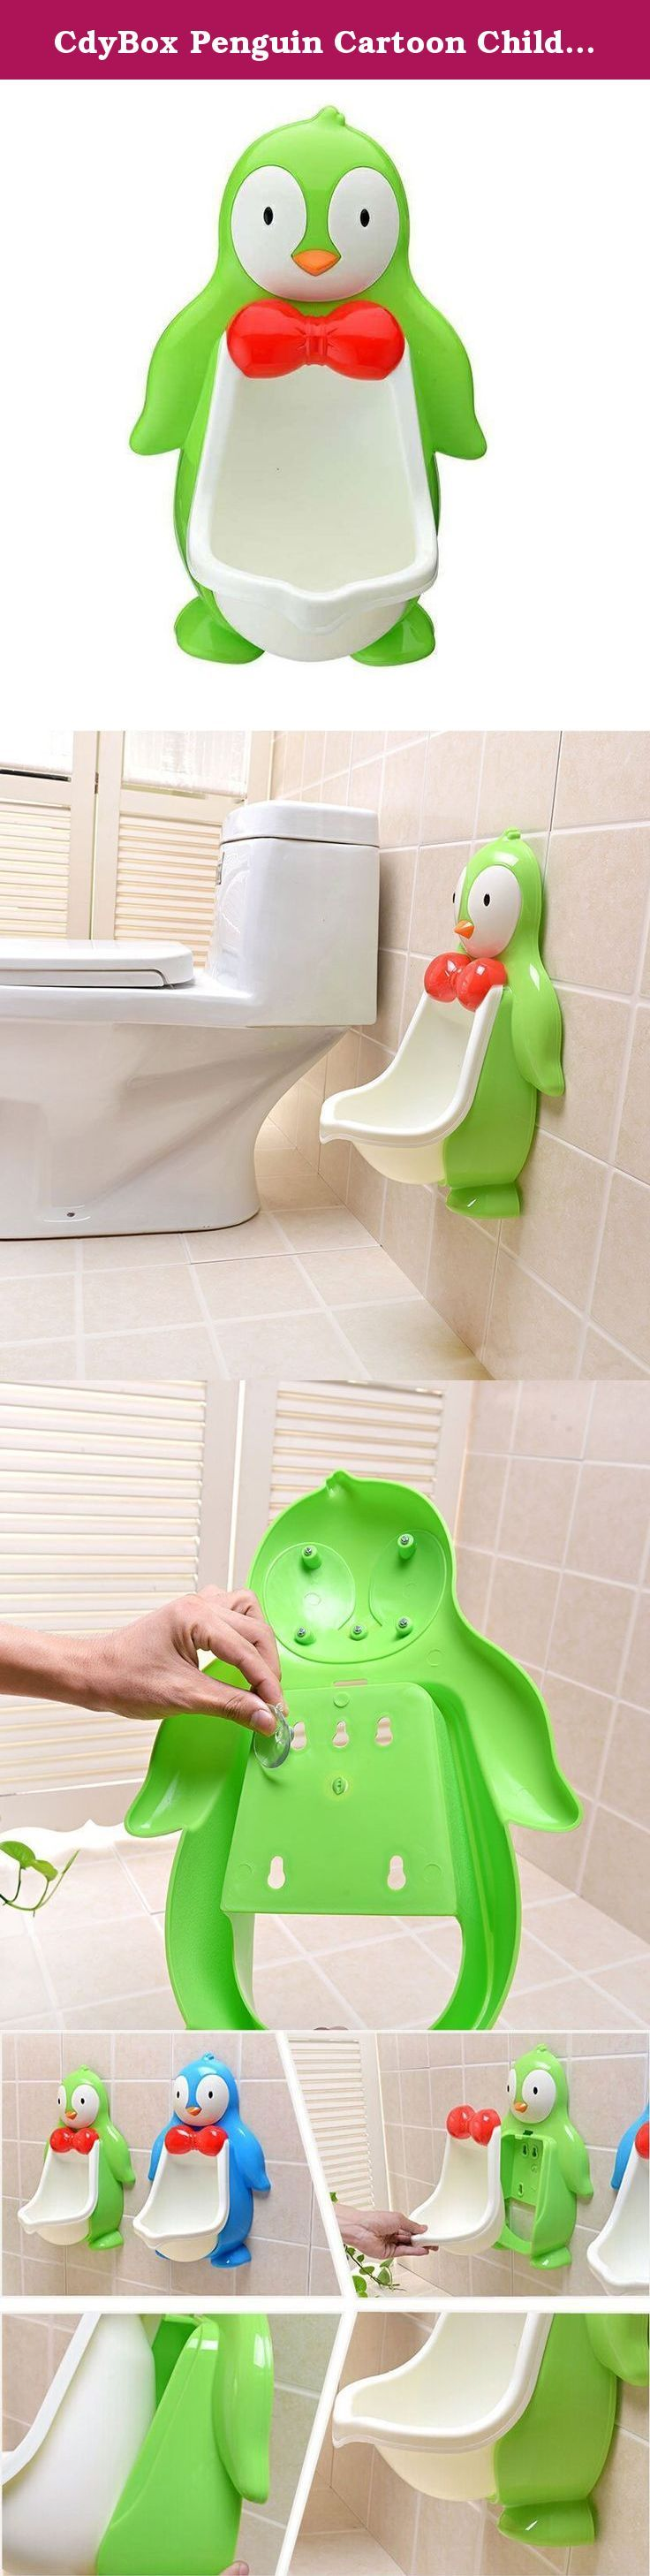 CdyBox Penguin Cartoon Children Wall Urinal Kids Boys Toilet Trainer Potty Training for Boys (Green). Description: Environmentally friendly material, nontoxic and no peculiar smell Cute Penguin Shape Attracting Boy's Attention, keeps your child focused during training With Removable Bowl Insert for Easy Cleaning in Sink or Tub The urinal can be adjusted to any height and attached to any bathroom wall or surfaces Large capacity ensure the urine will not overflow Material: PP + PVC .